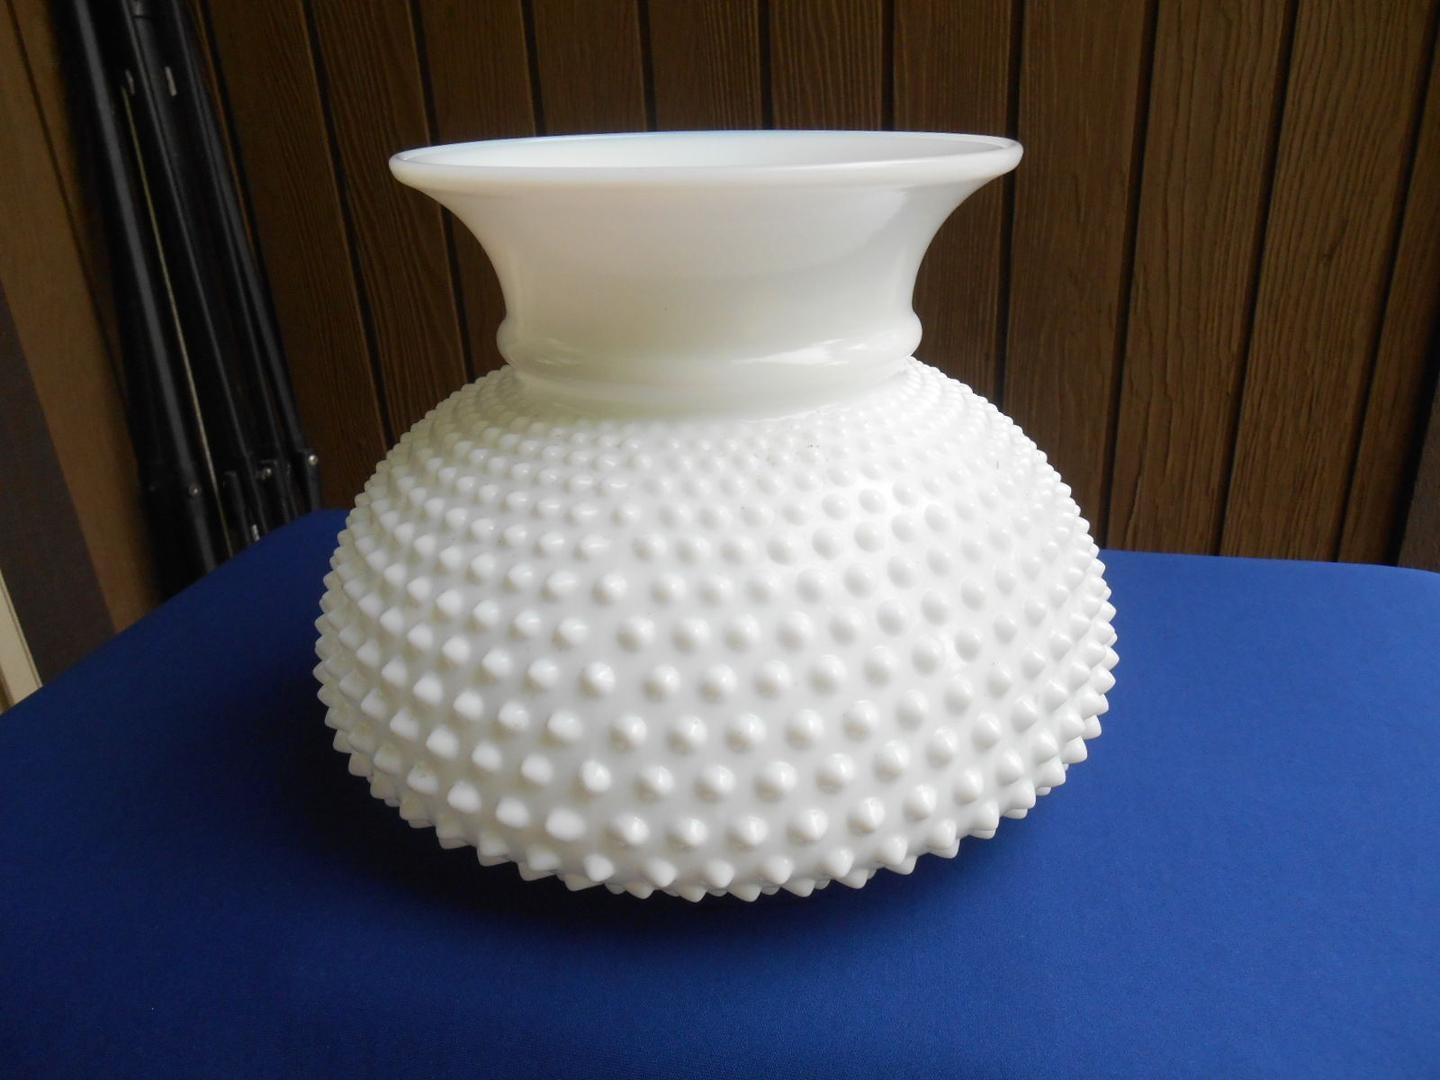 vintage cased glass vase of fenton art glass white hobnail lamp shade large 1867990442 regarding fenton art glass white hobnail lamp 1 fad82979540429b8ff5220a339f73cdb